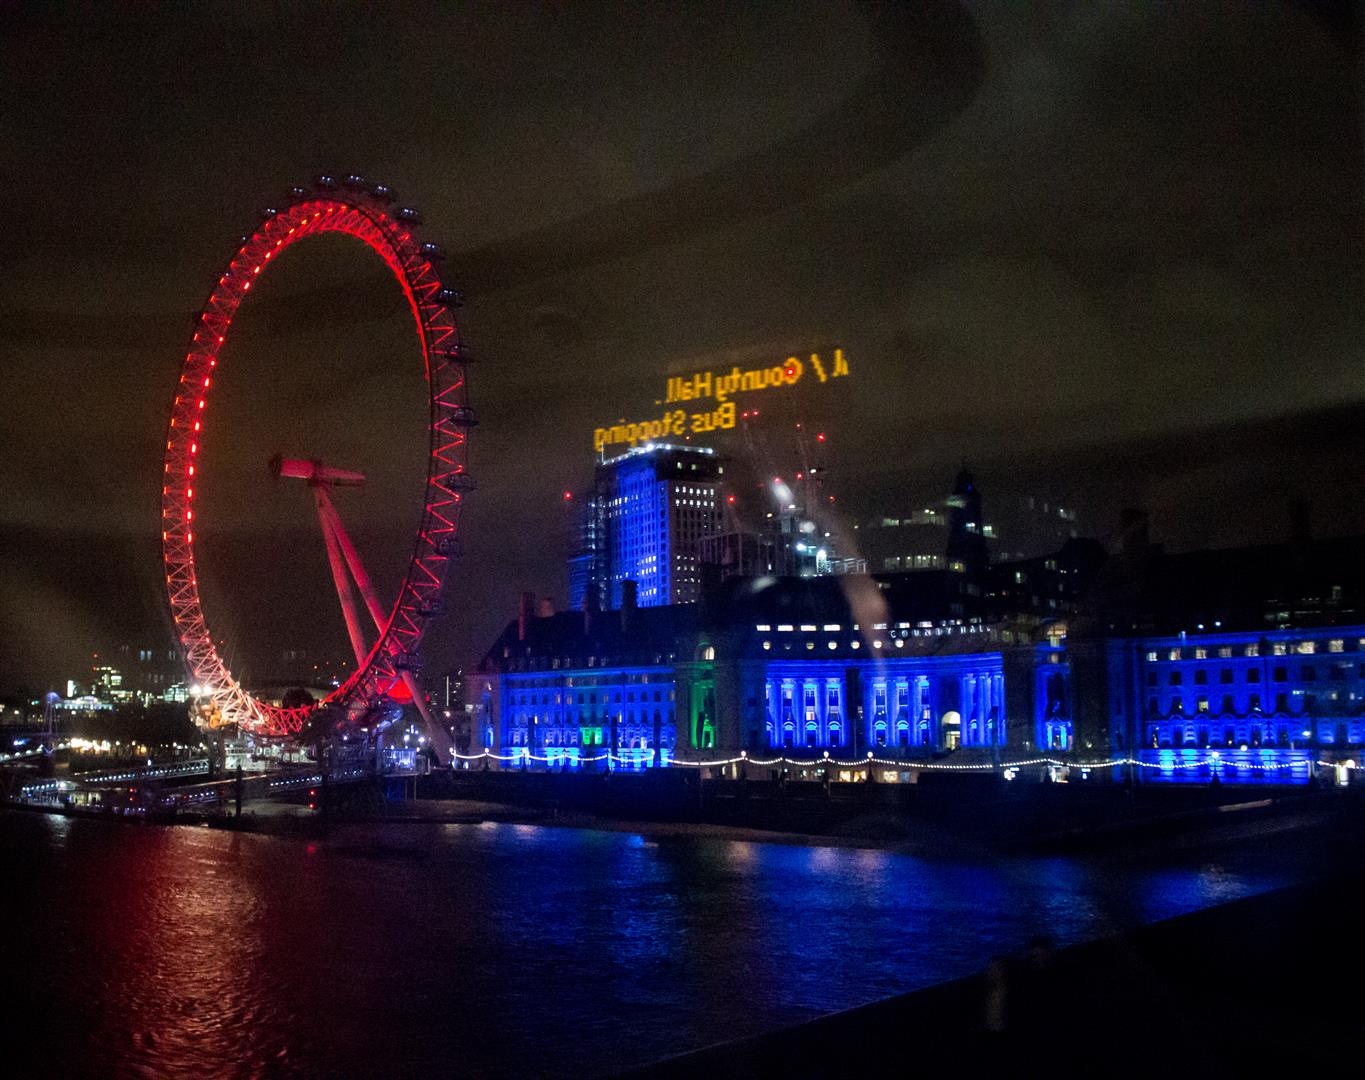 Taken from a big red bus, this place looks awesome at night!